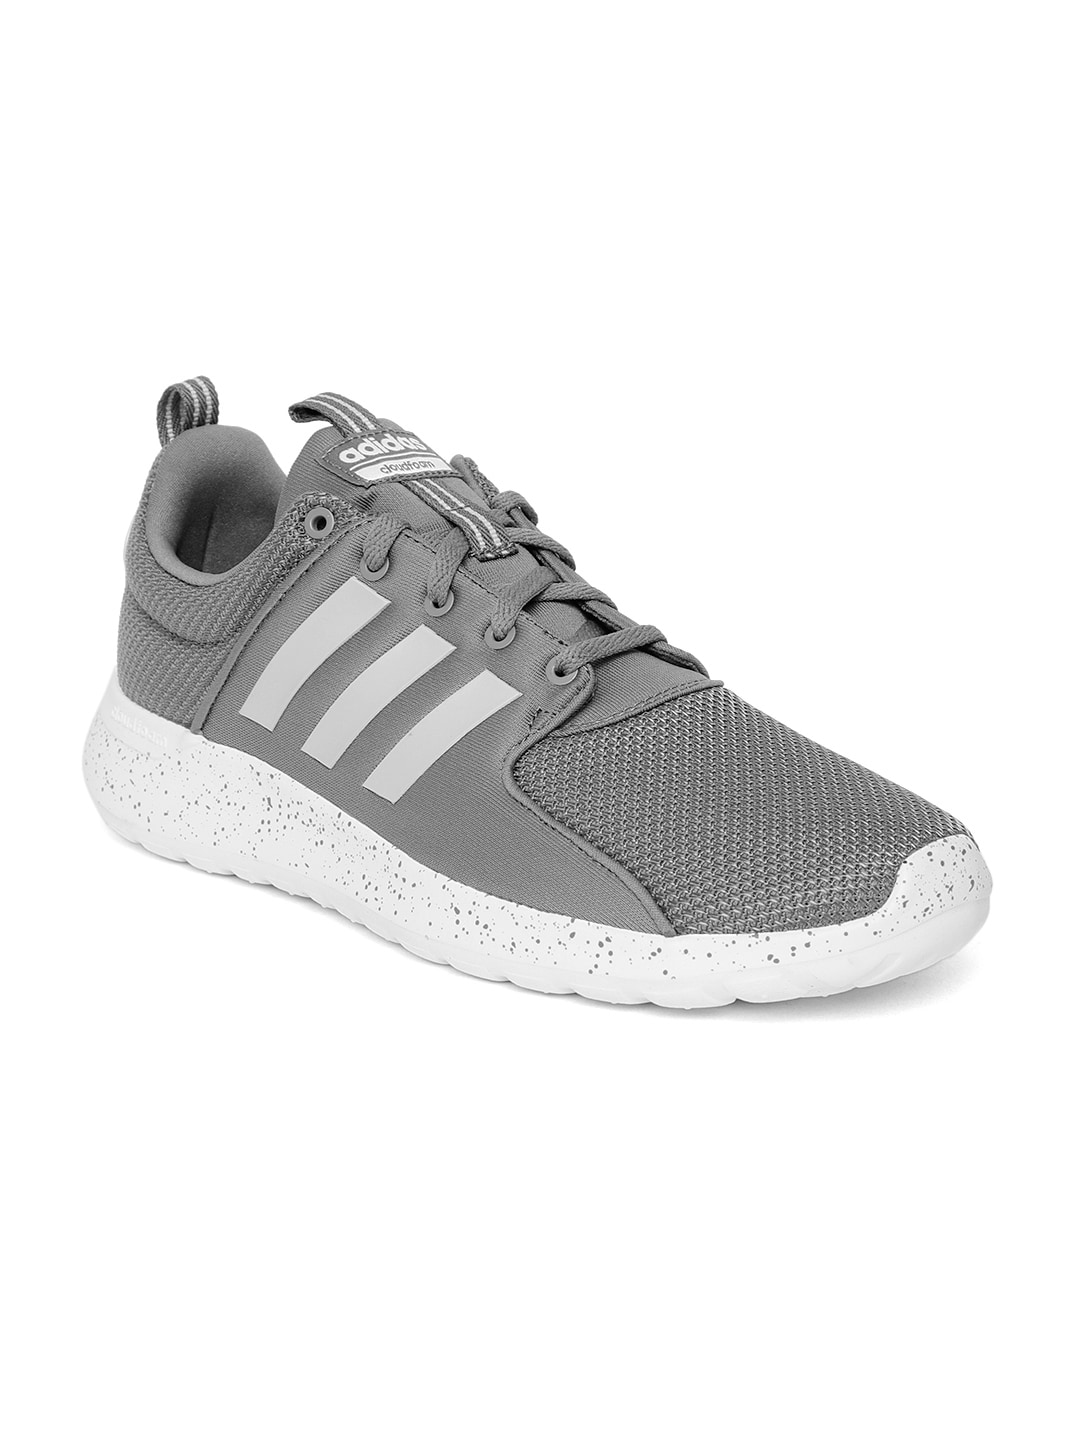 buy popular 8d7d9 a2a6e Adidas Shoes - Buy Adidas Shoes for Men   Women Online - Myntra